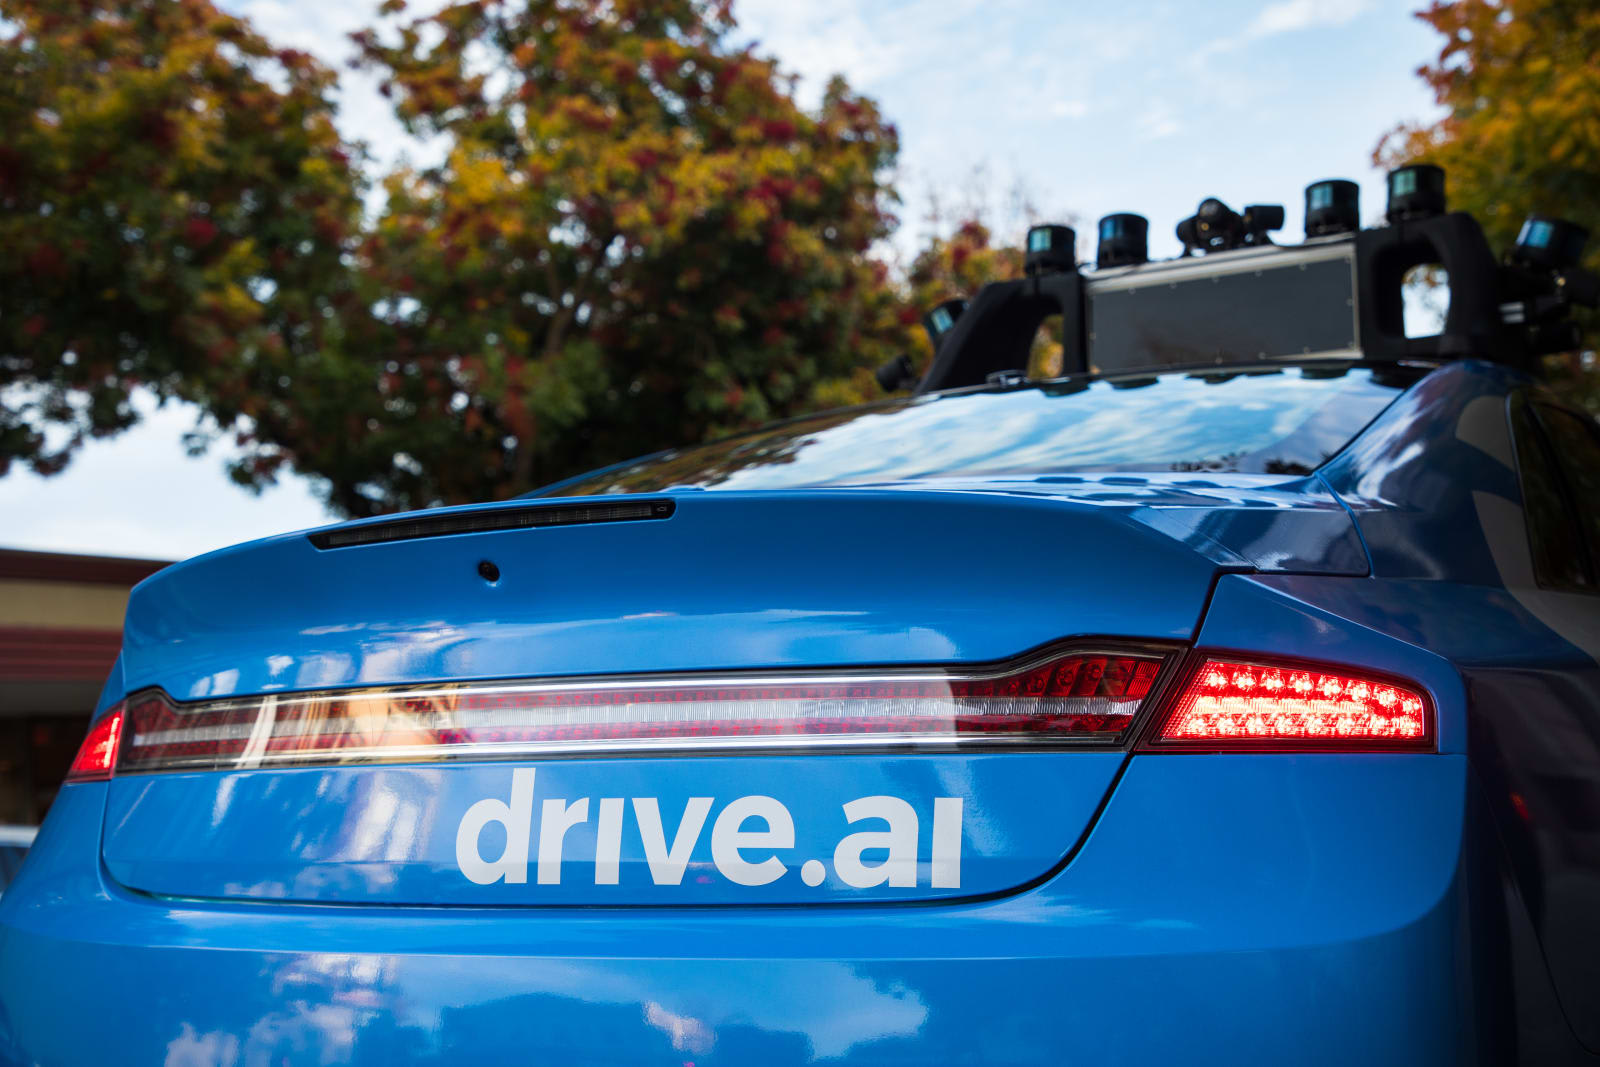 Apple confirms it acquired a self-driving car startup